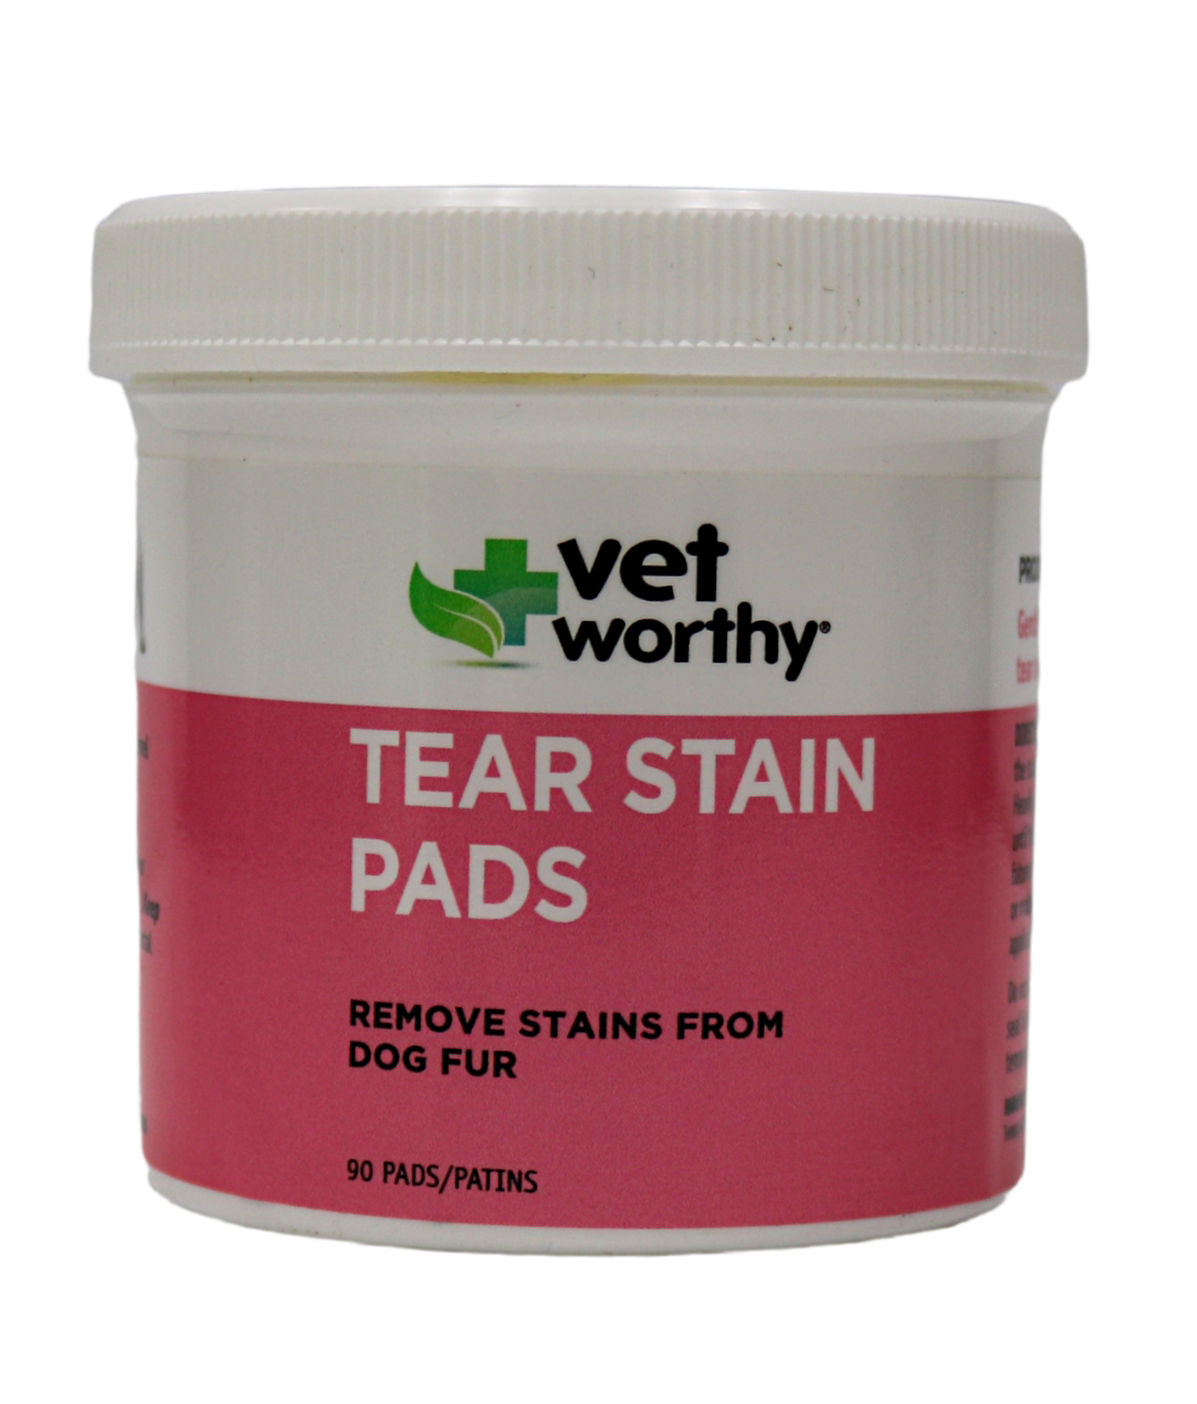 VET WORTHY TEAR STAIN PADS 90CT.